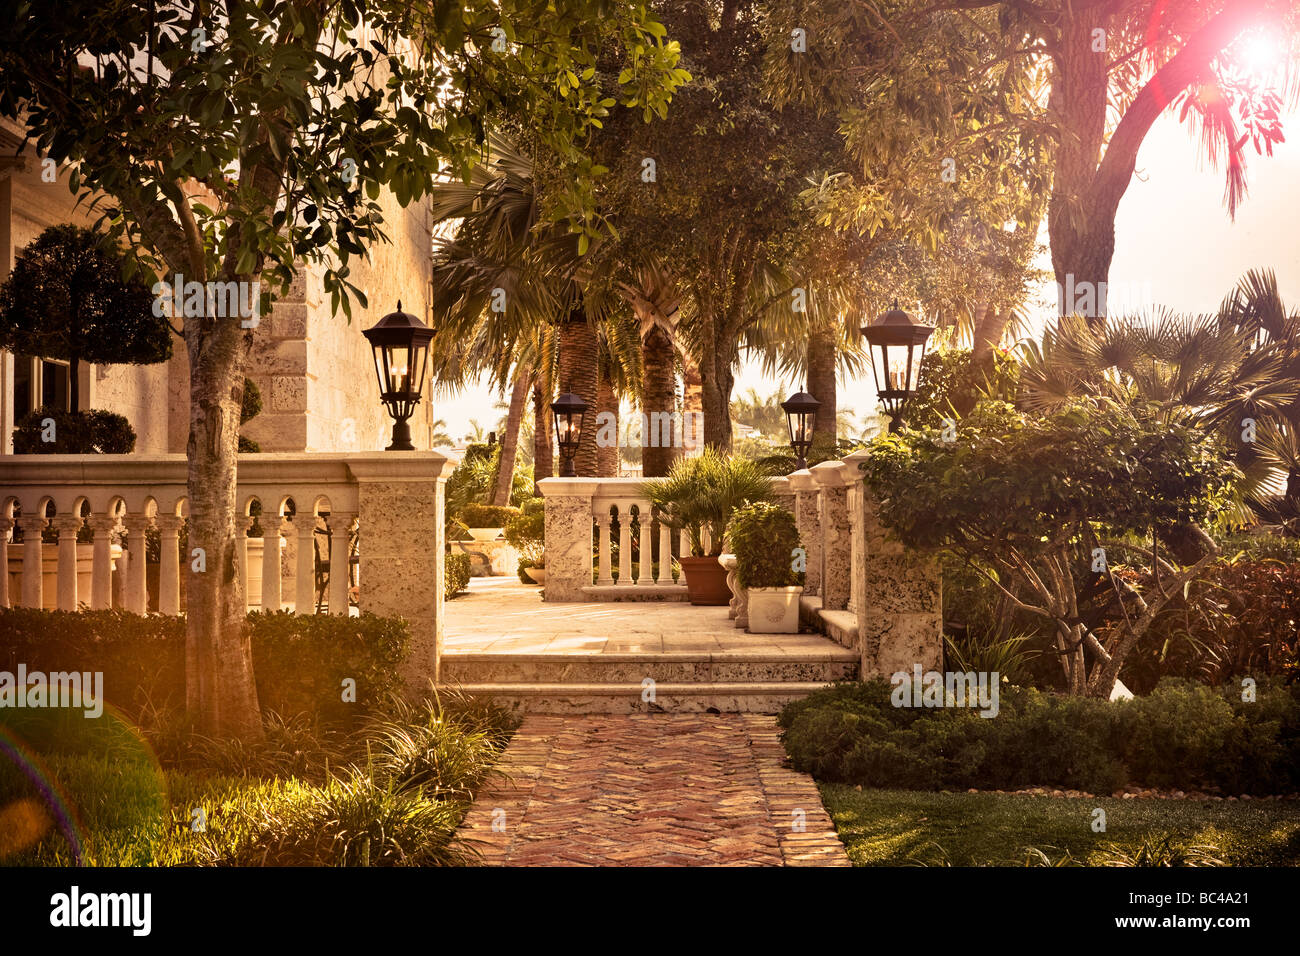 A limestone patio terrace at a mansion in Boca Raton, Florida - Stock Image